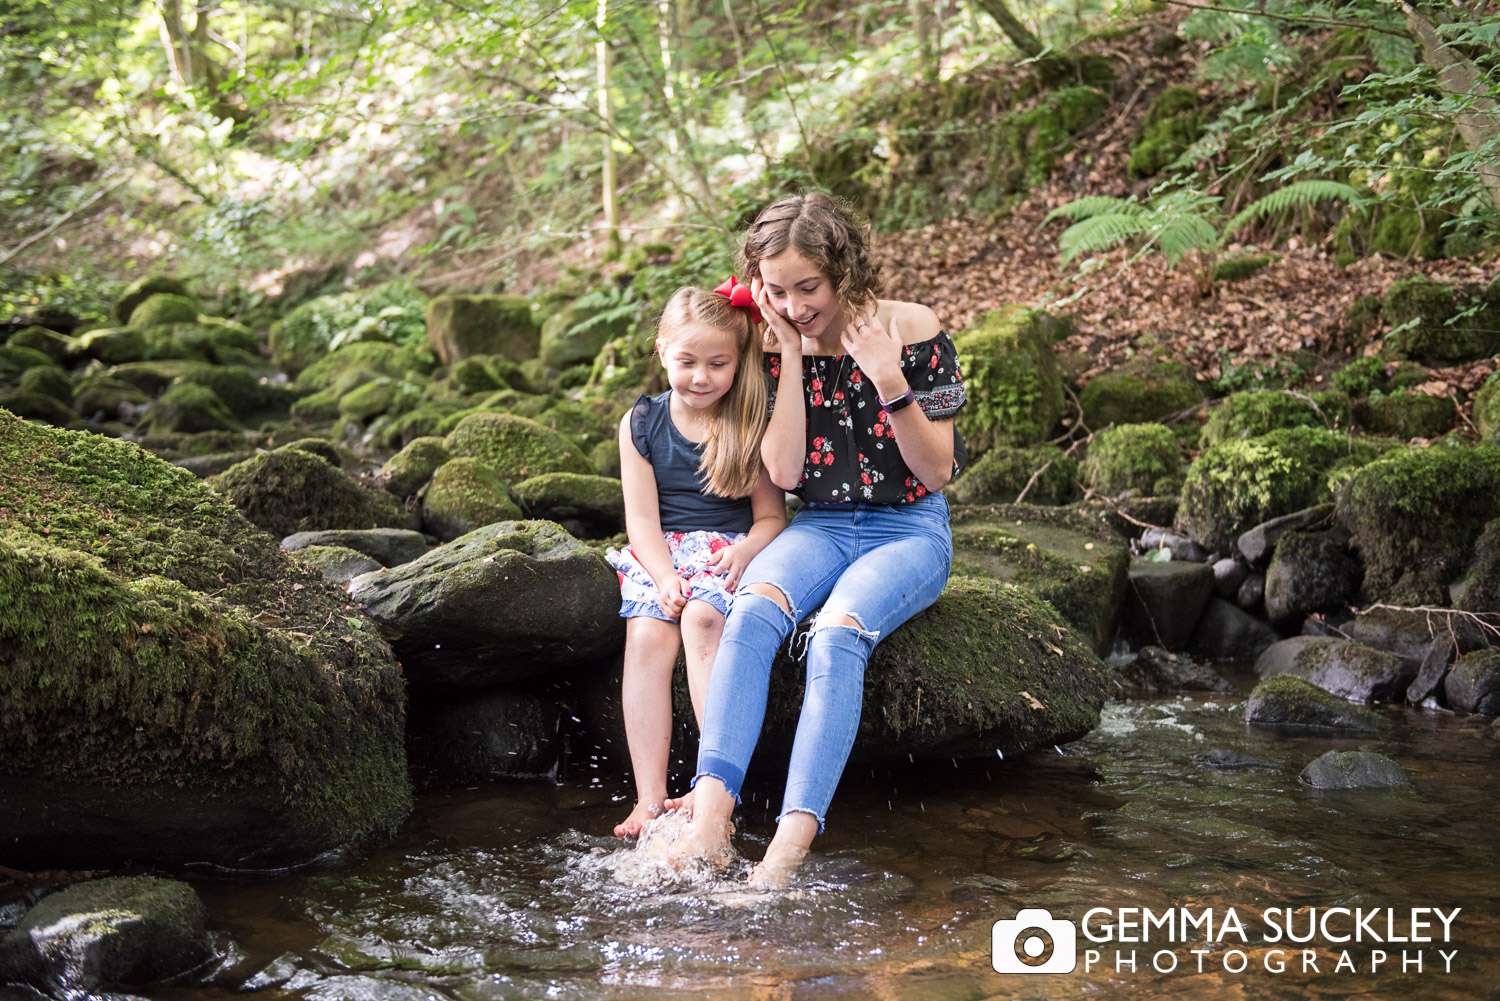 sister dipping their feet in a stream in sutton in craven during their lifestyle photo shoot